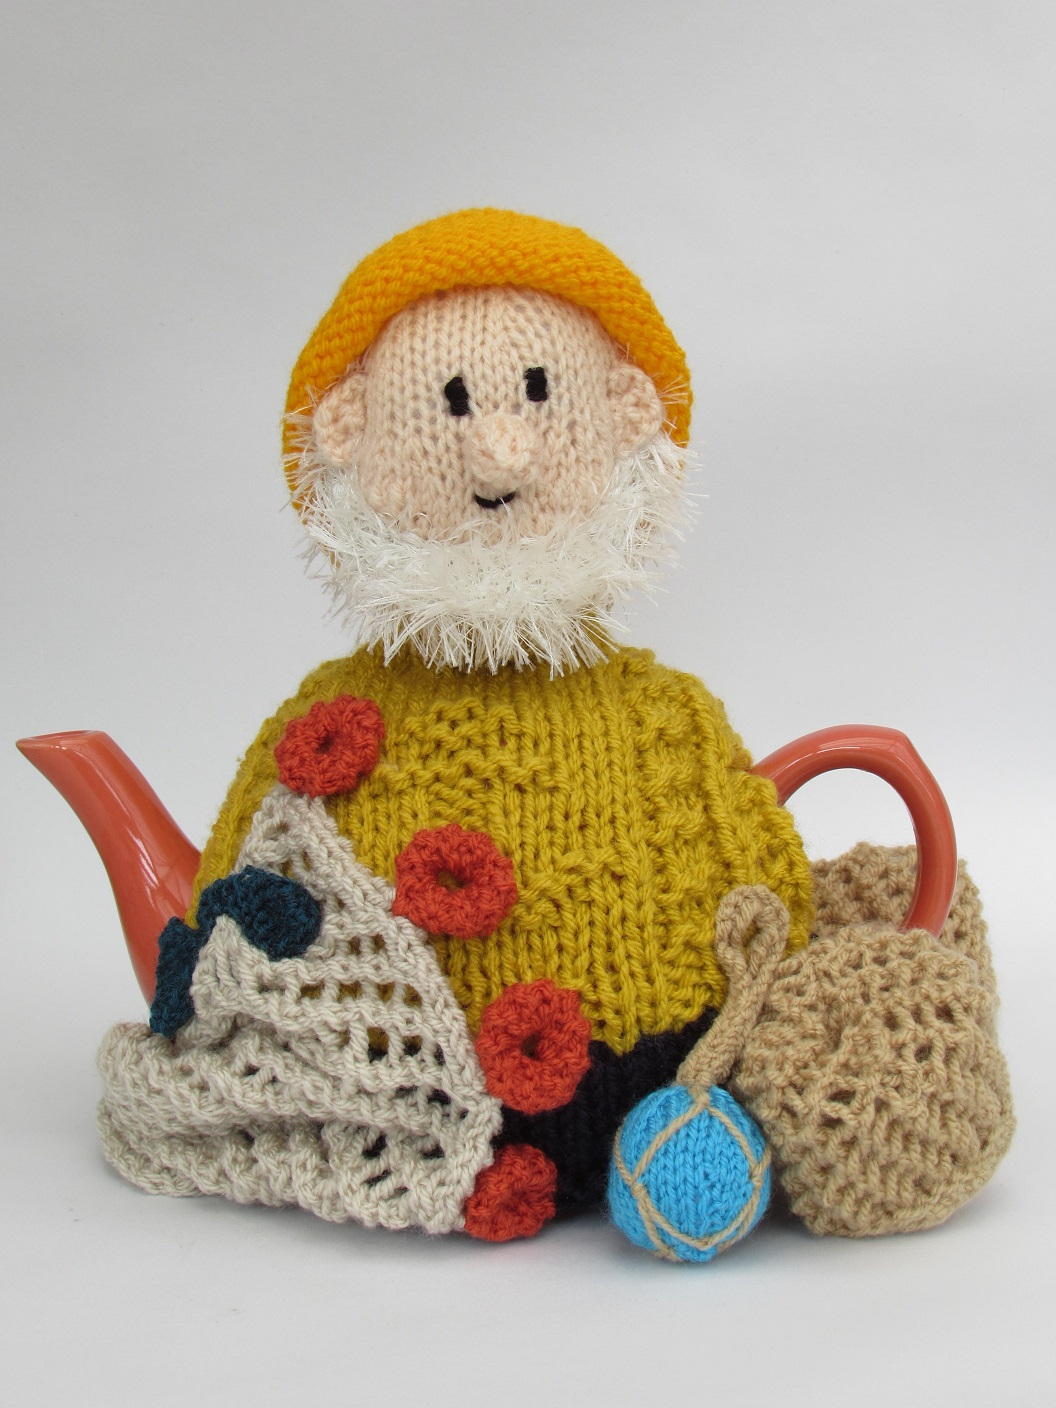 Knitted Tea Cosy Pattern Easy Tea Cosy Knitting Patterns From Tea Cosy Folk Learn How To Knit Our